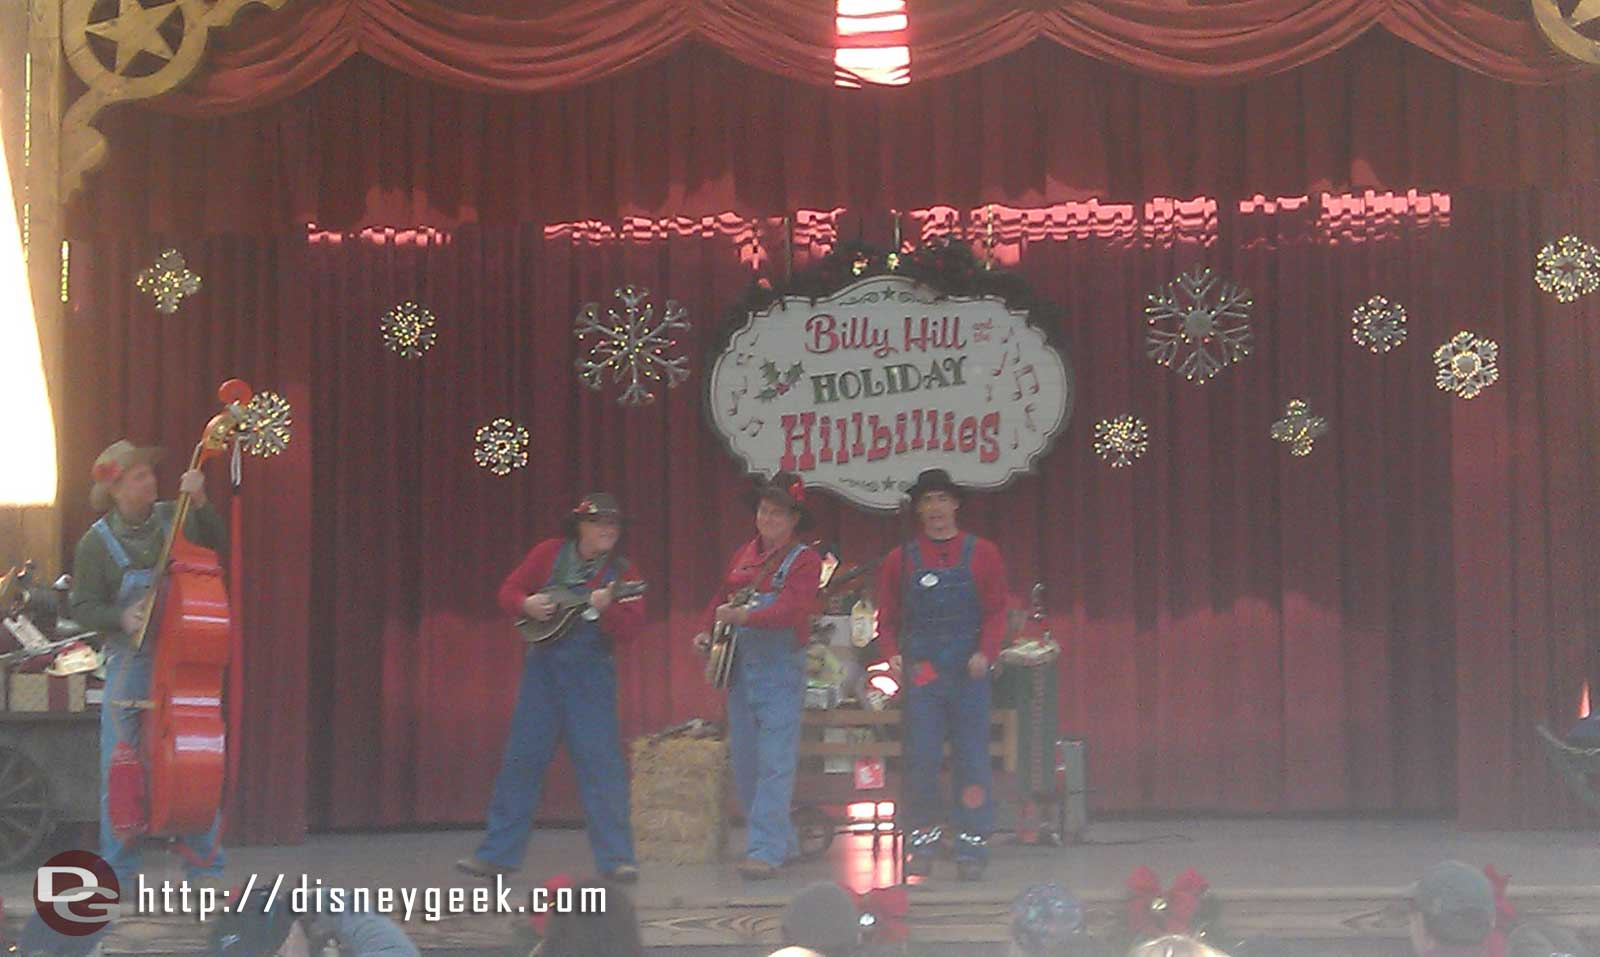 Checking in with the Holiday Hillbillies